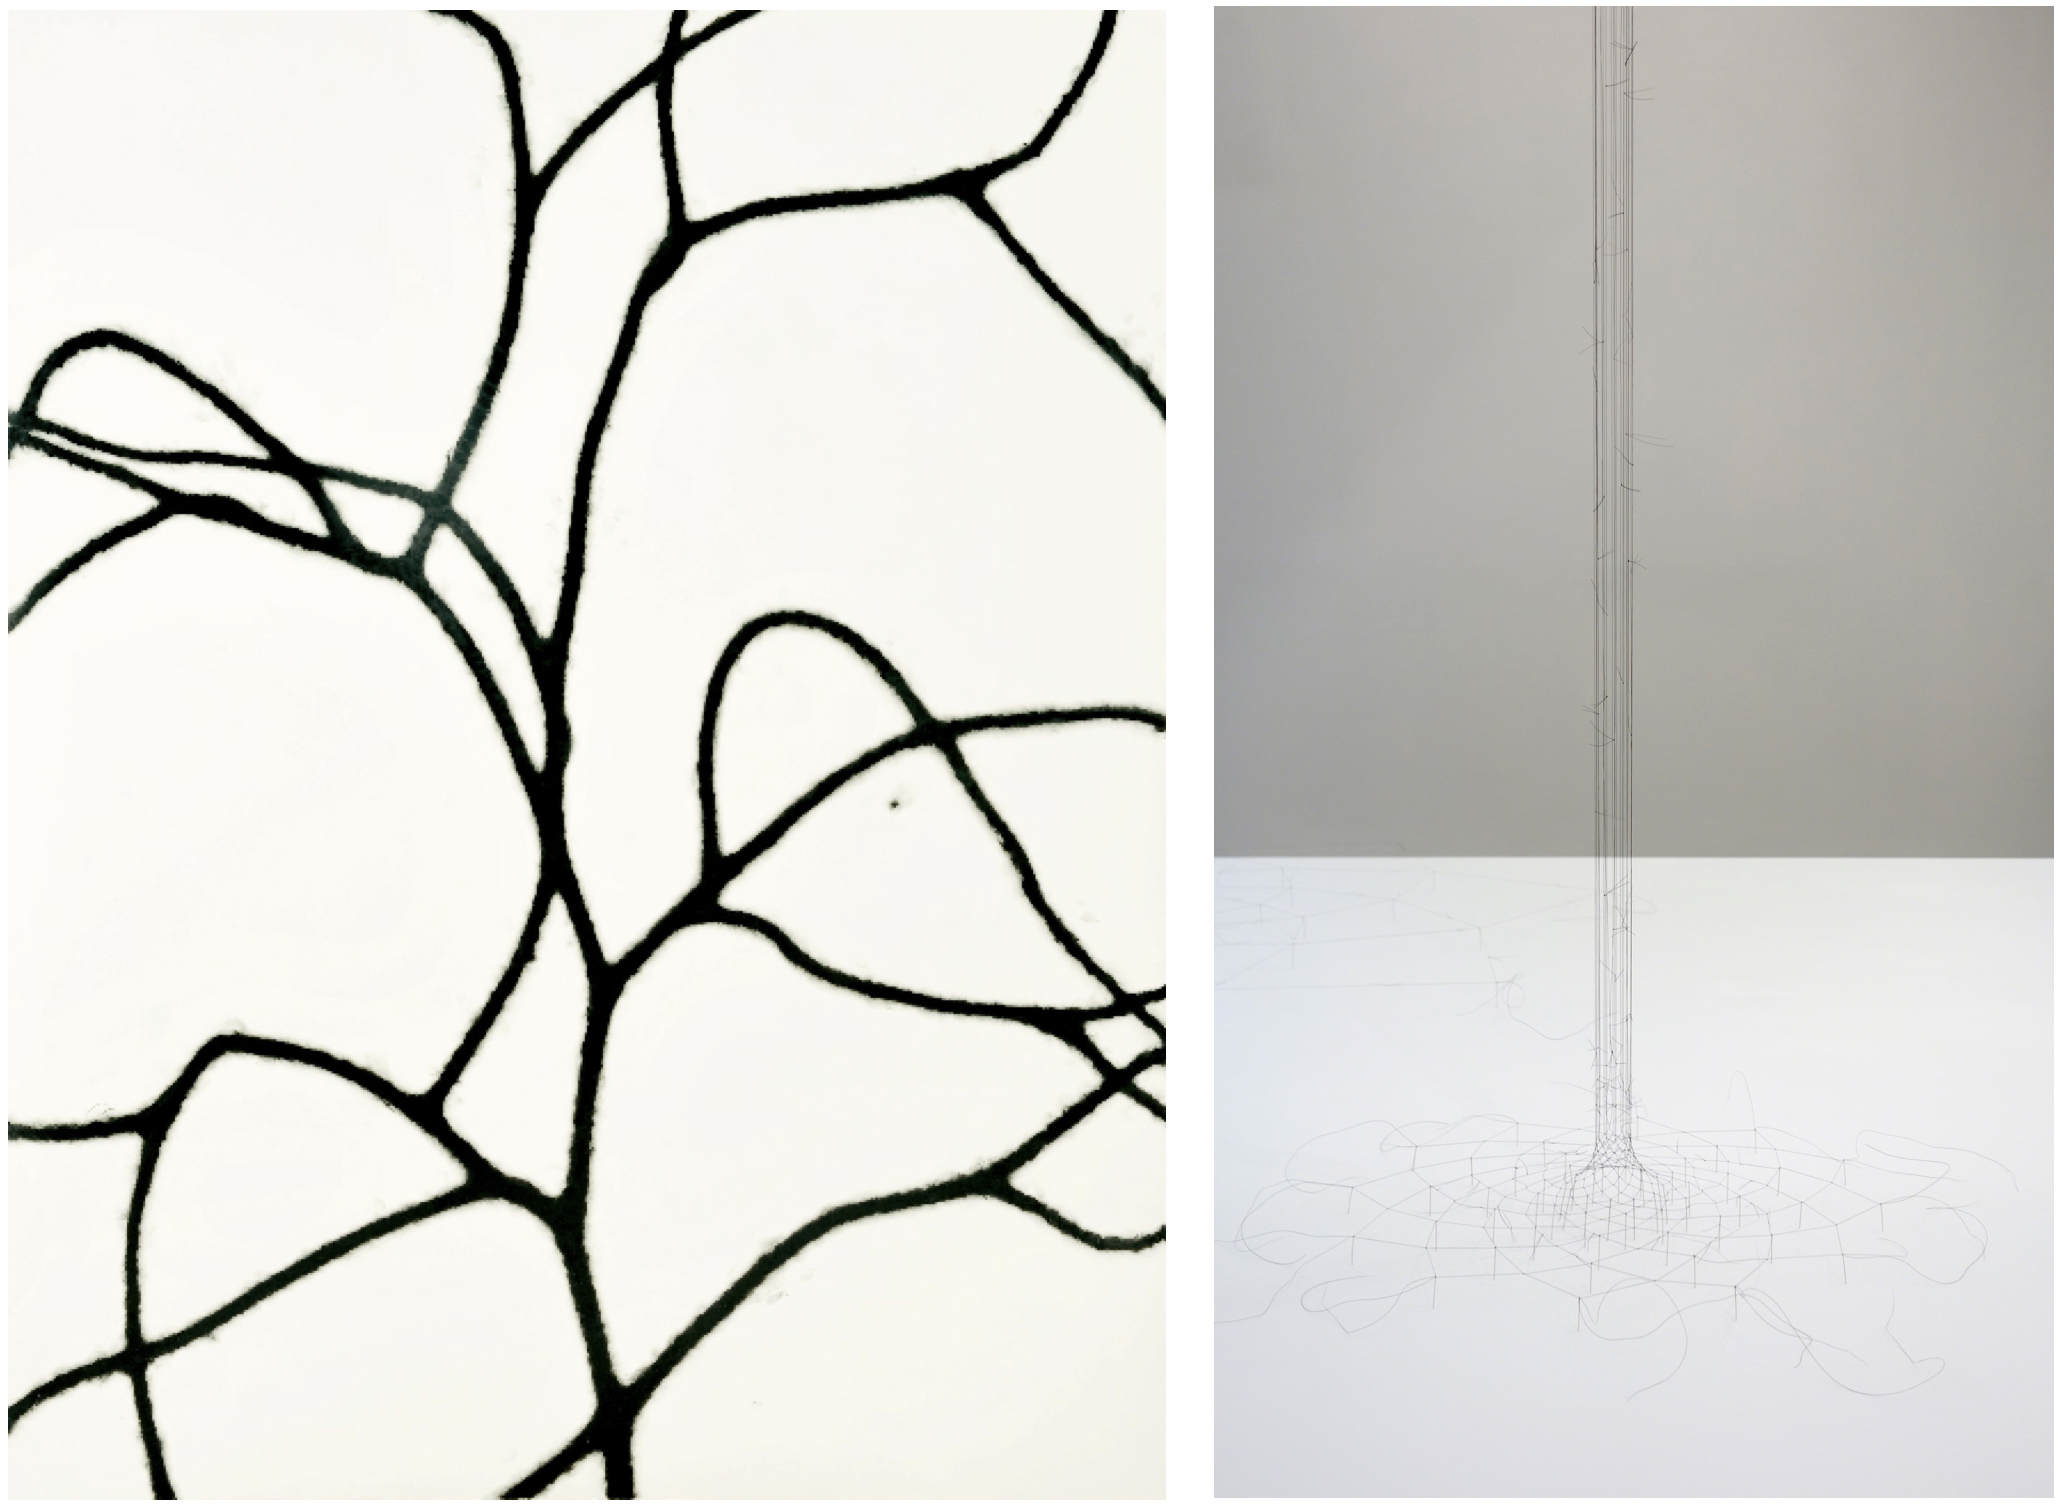 Left: Christiane Löhr,  Untitled (21) , 2012, Oil pastel on paper, 58 1/4 x 47 1/4 inches (148 x 120 cm) Right: Christiane Löhr,  Endless Column (Heptagon) , 2015, Horsehair, needles, 20 1/2 x 20 1/2 x 102 1/2 inches (52 x 52 x 260 cm)